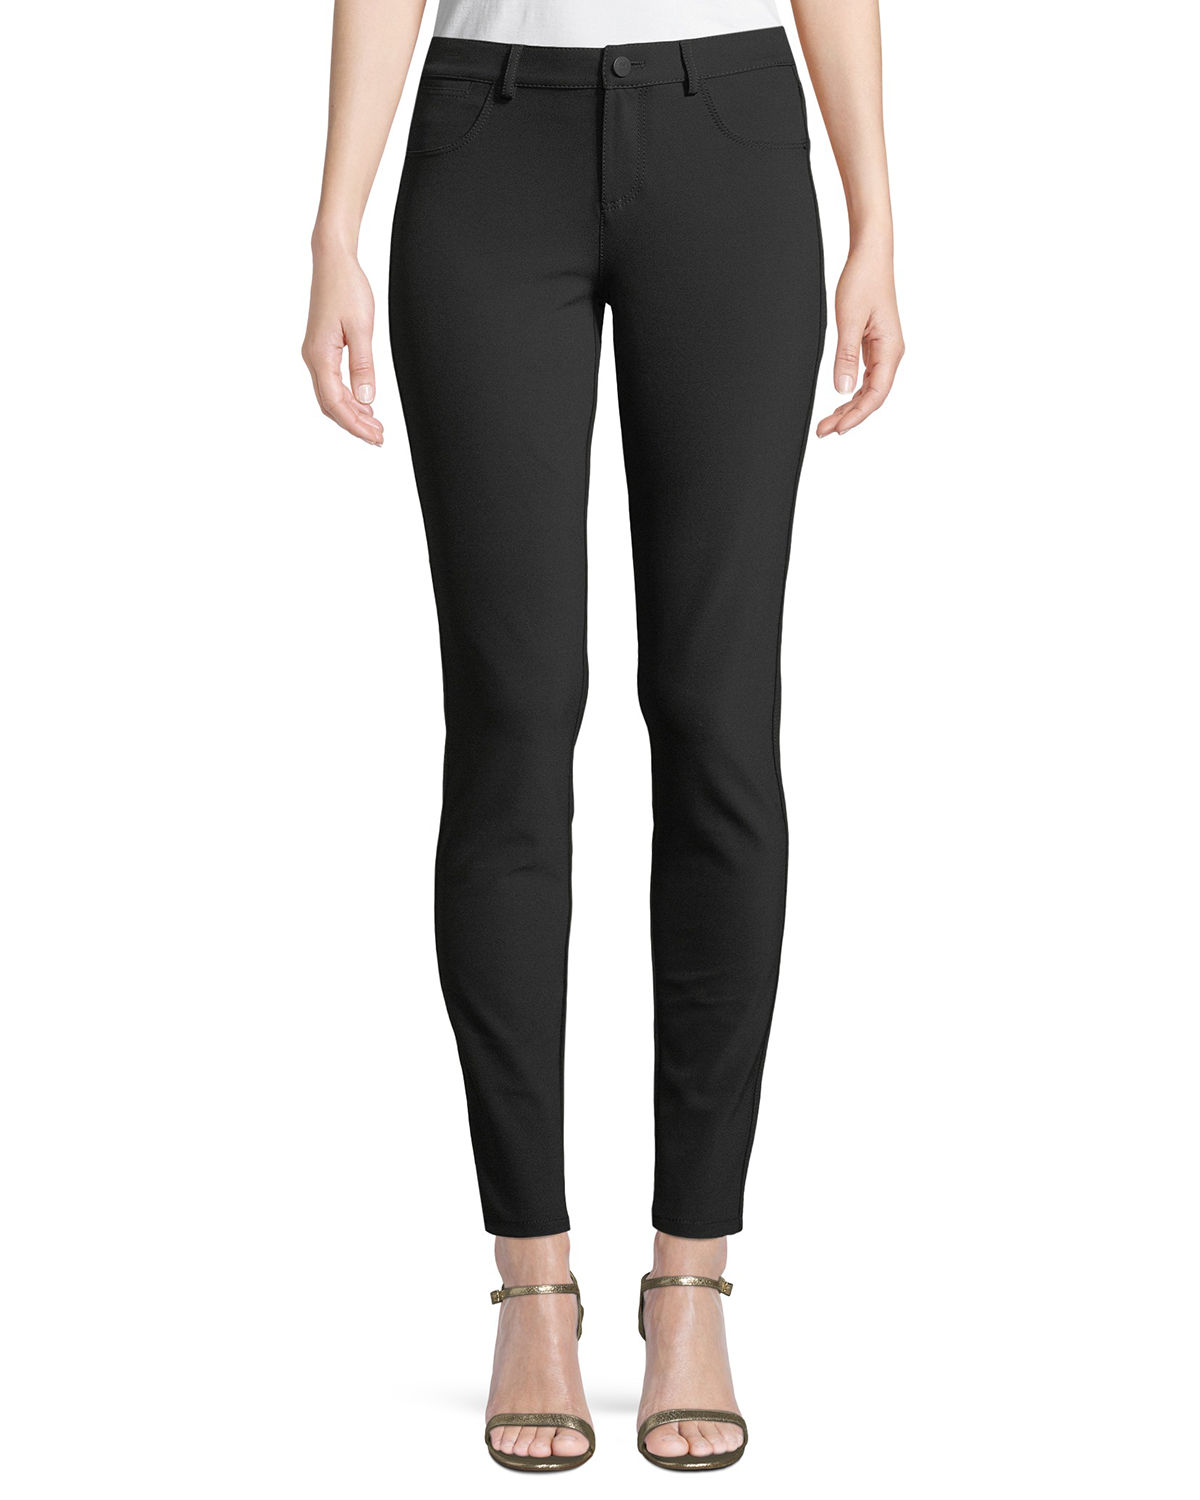 28a7db8f37 Lafayette 148 New York Mercer Acclaimed Stretch Mid-Rise Skinny Jeans